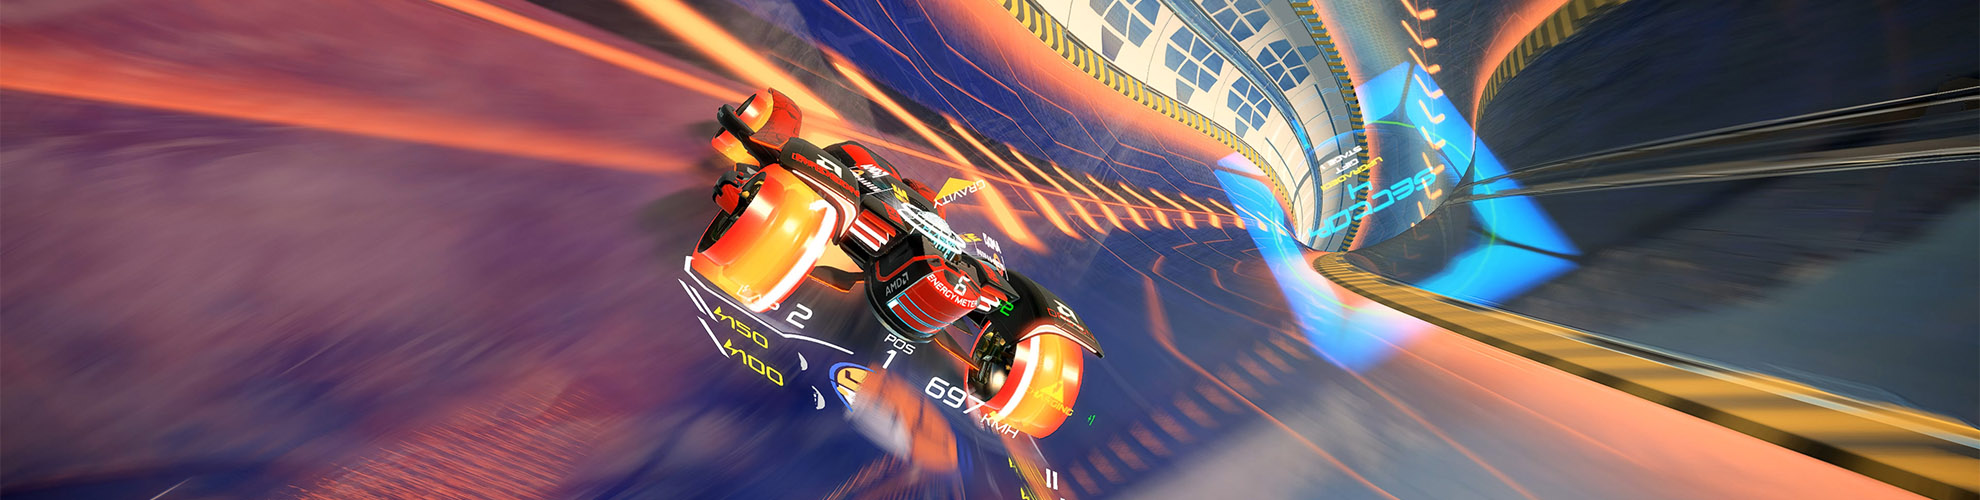 22 Racing Series - Real-Time Gameplay Image